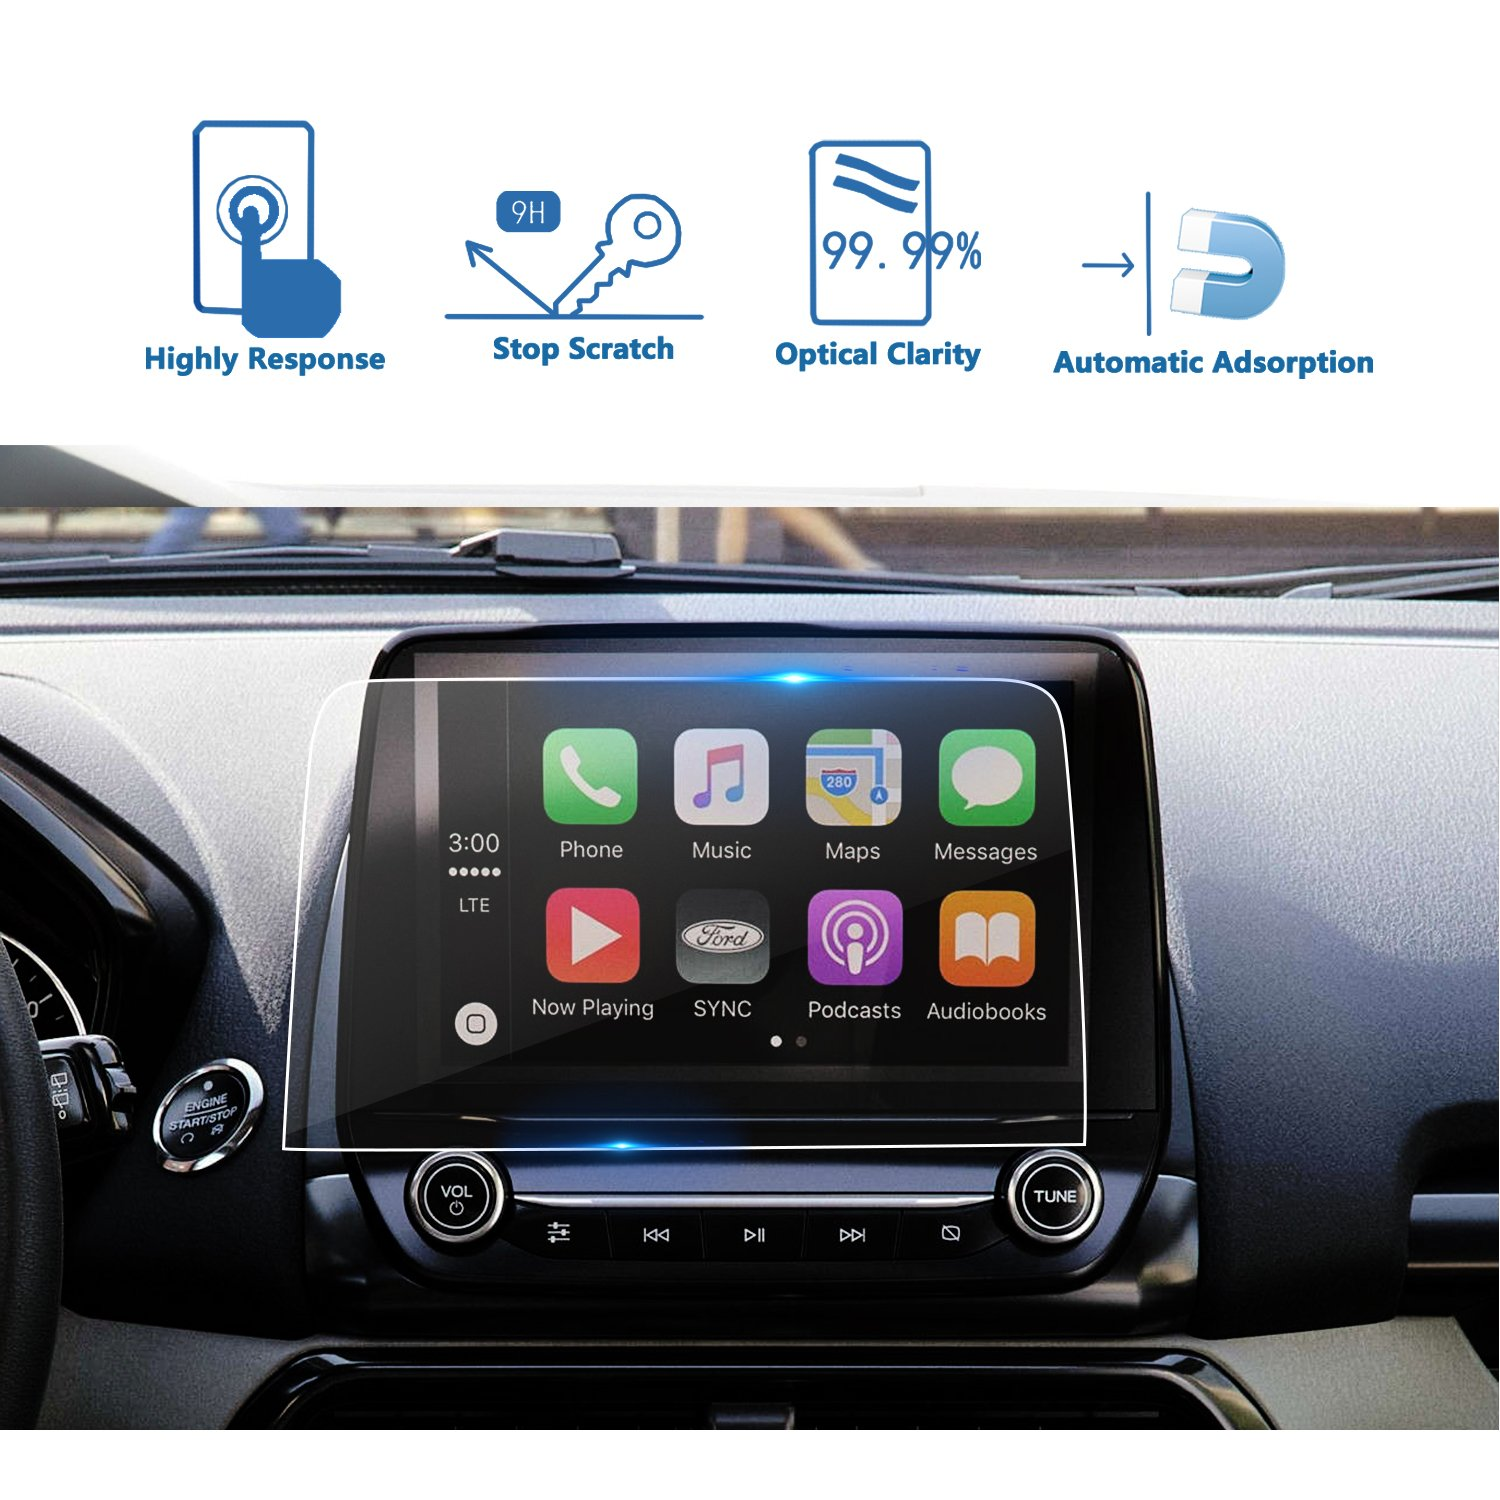 LFOTPP 2018 Ford EcoSport SYNC 3 8 Inch Trapezoid Tempered Glass Car Navigation Screen Protector, [9H] Infotainment System Screen Center Touchscreen Protector Anti Scratch High Clarity